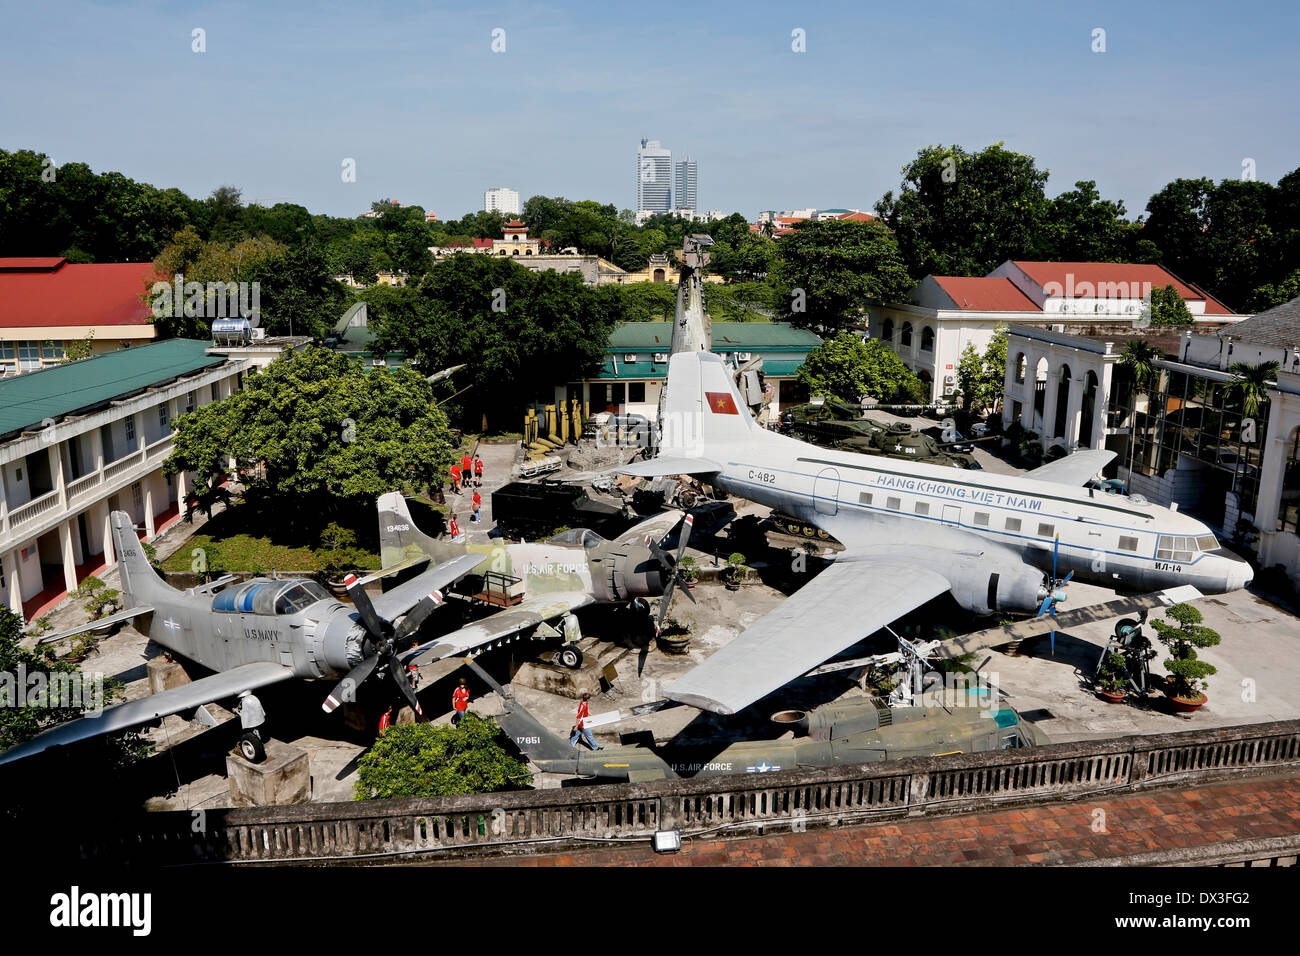 Vietnamese transport plane and captured American planes and helicopter in the Military History Museum, Vietnam, South East Asia - Stock Image